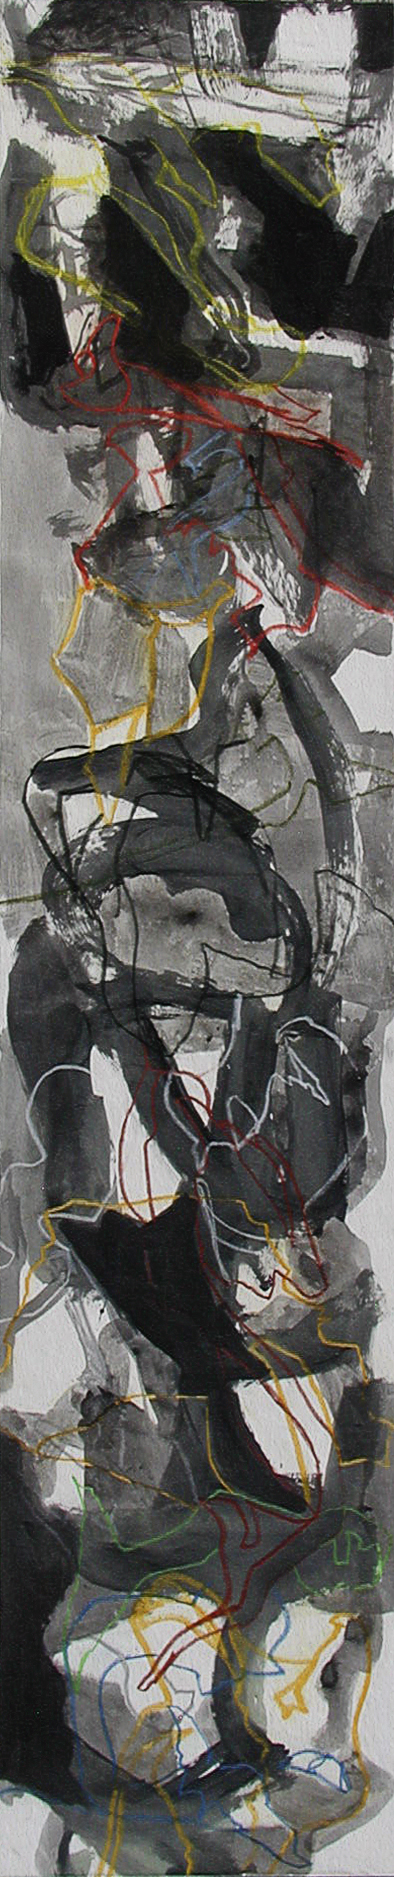 Graces #2  mixed media on panel  96 x 20